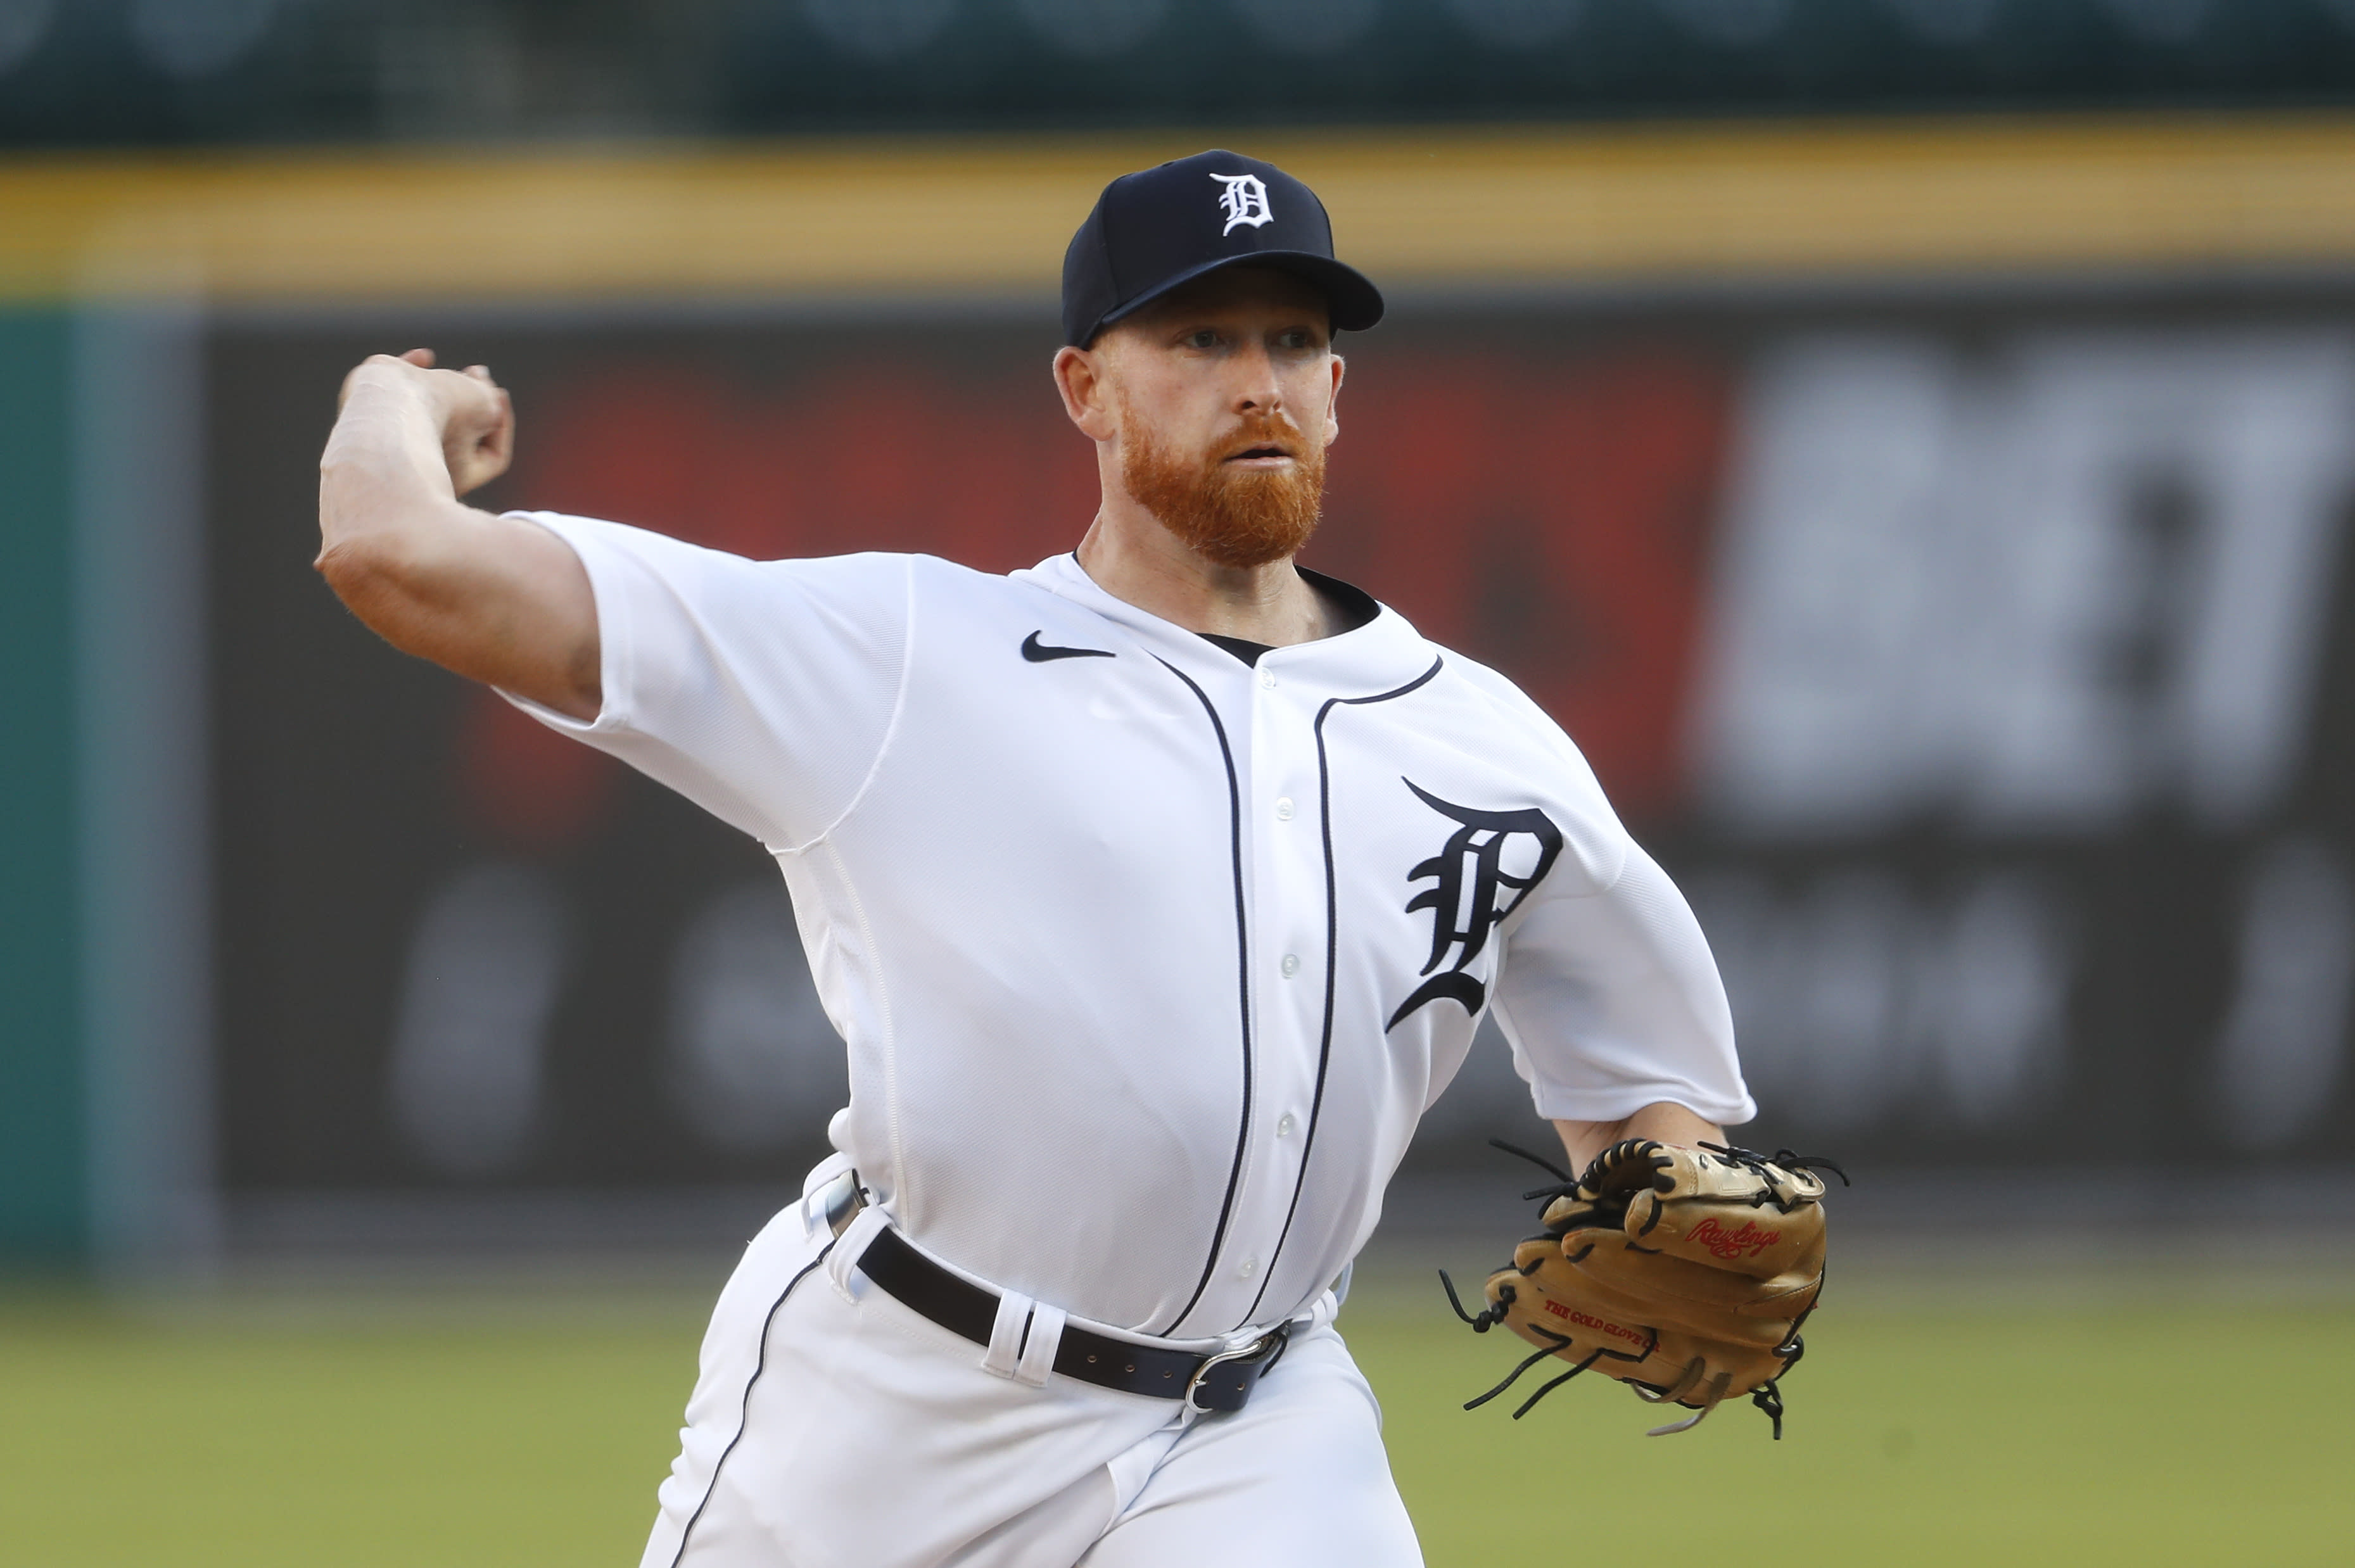 Detroit Tigers pitcher Spencer Turnbull throws against the Cincinnati Reds in the second inning of a baseball game in Detroit, Friday, July 31, 2020. (AP Photo/Paul Sancya)